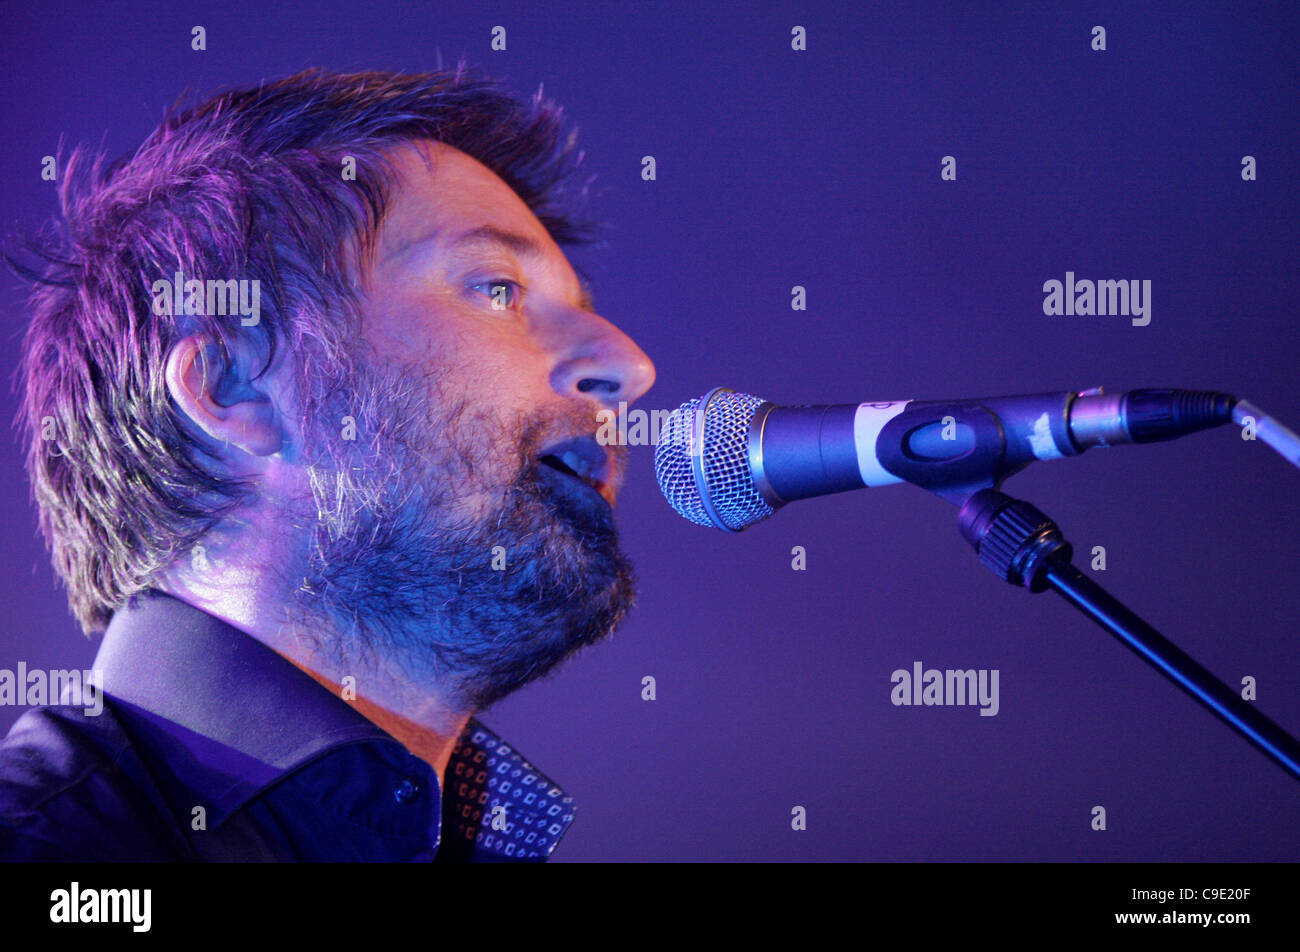 LONDON, UK, 27/11/2011. King Creosote playing live at Mencap's Little Noise Sessions in the church of St John-at - Stock Image